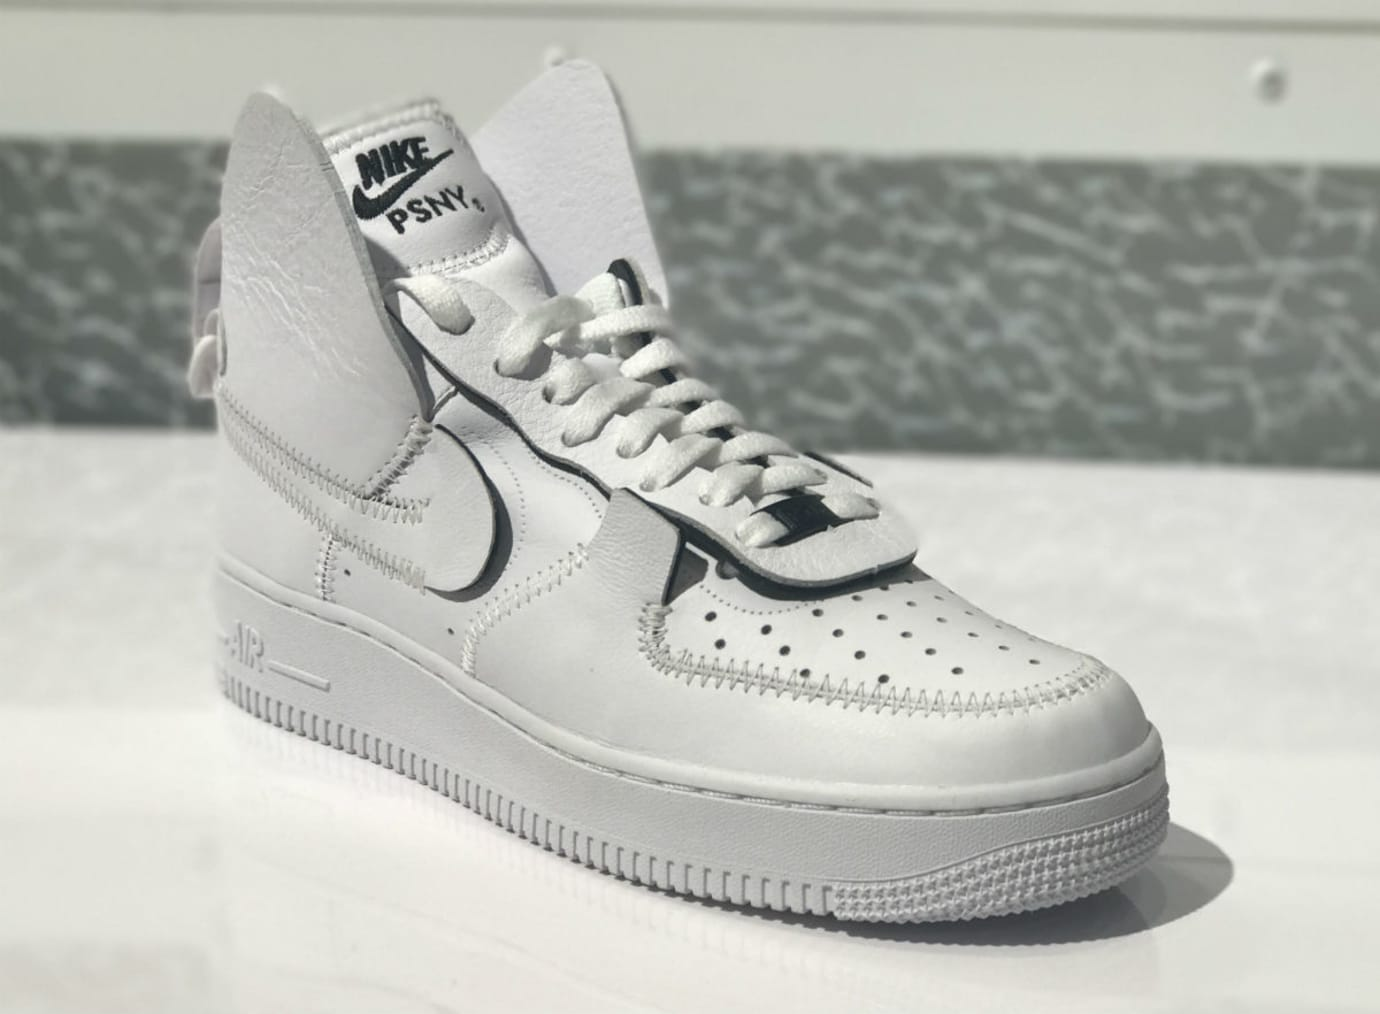 Air Force X Psny Nike 1 HighSole Collector 76gybf